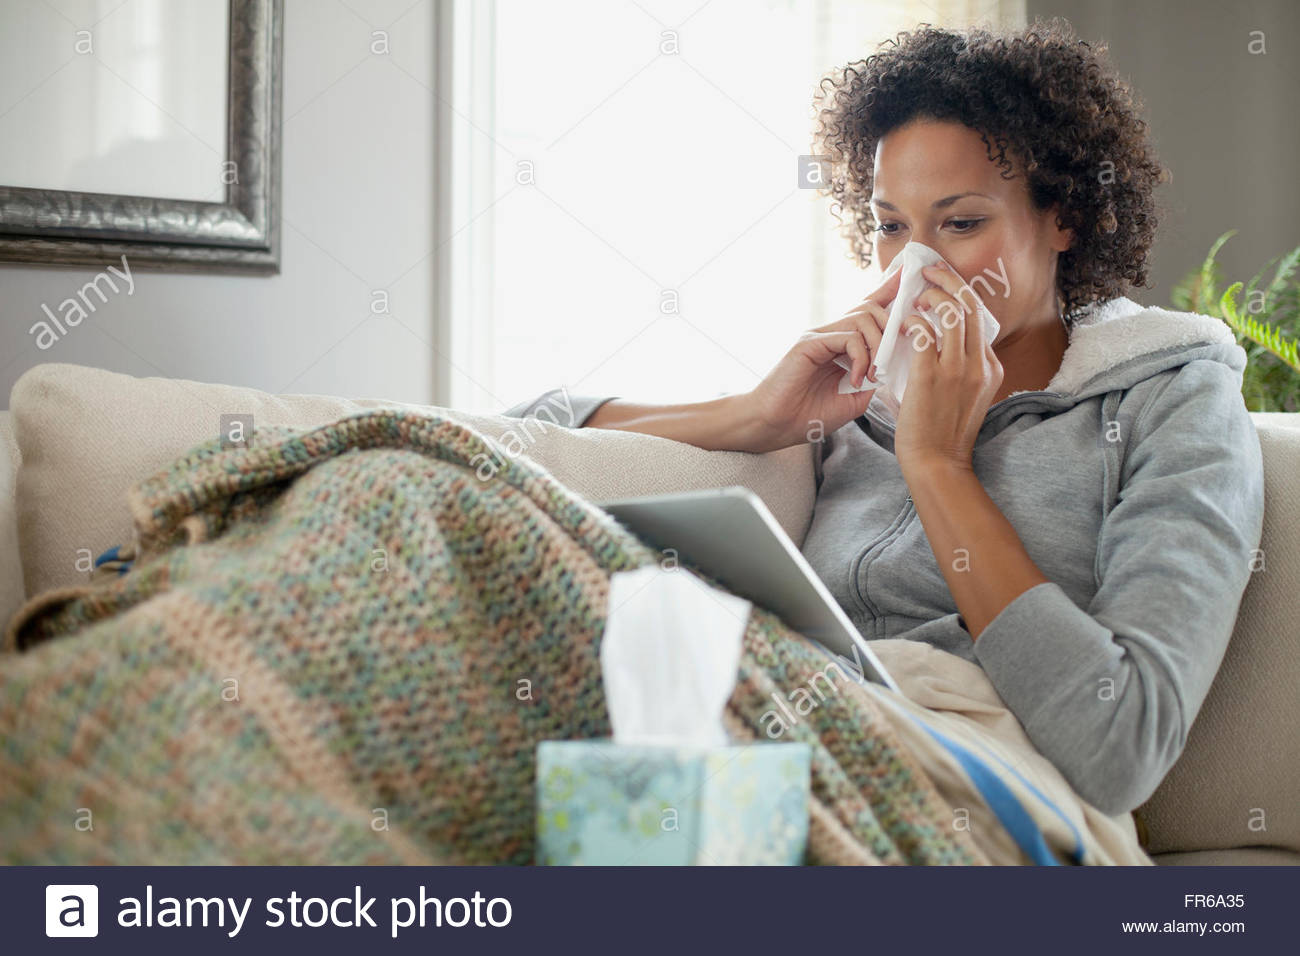 woman nurding a cold at home - Stock Image